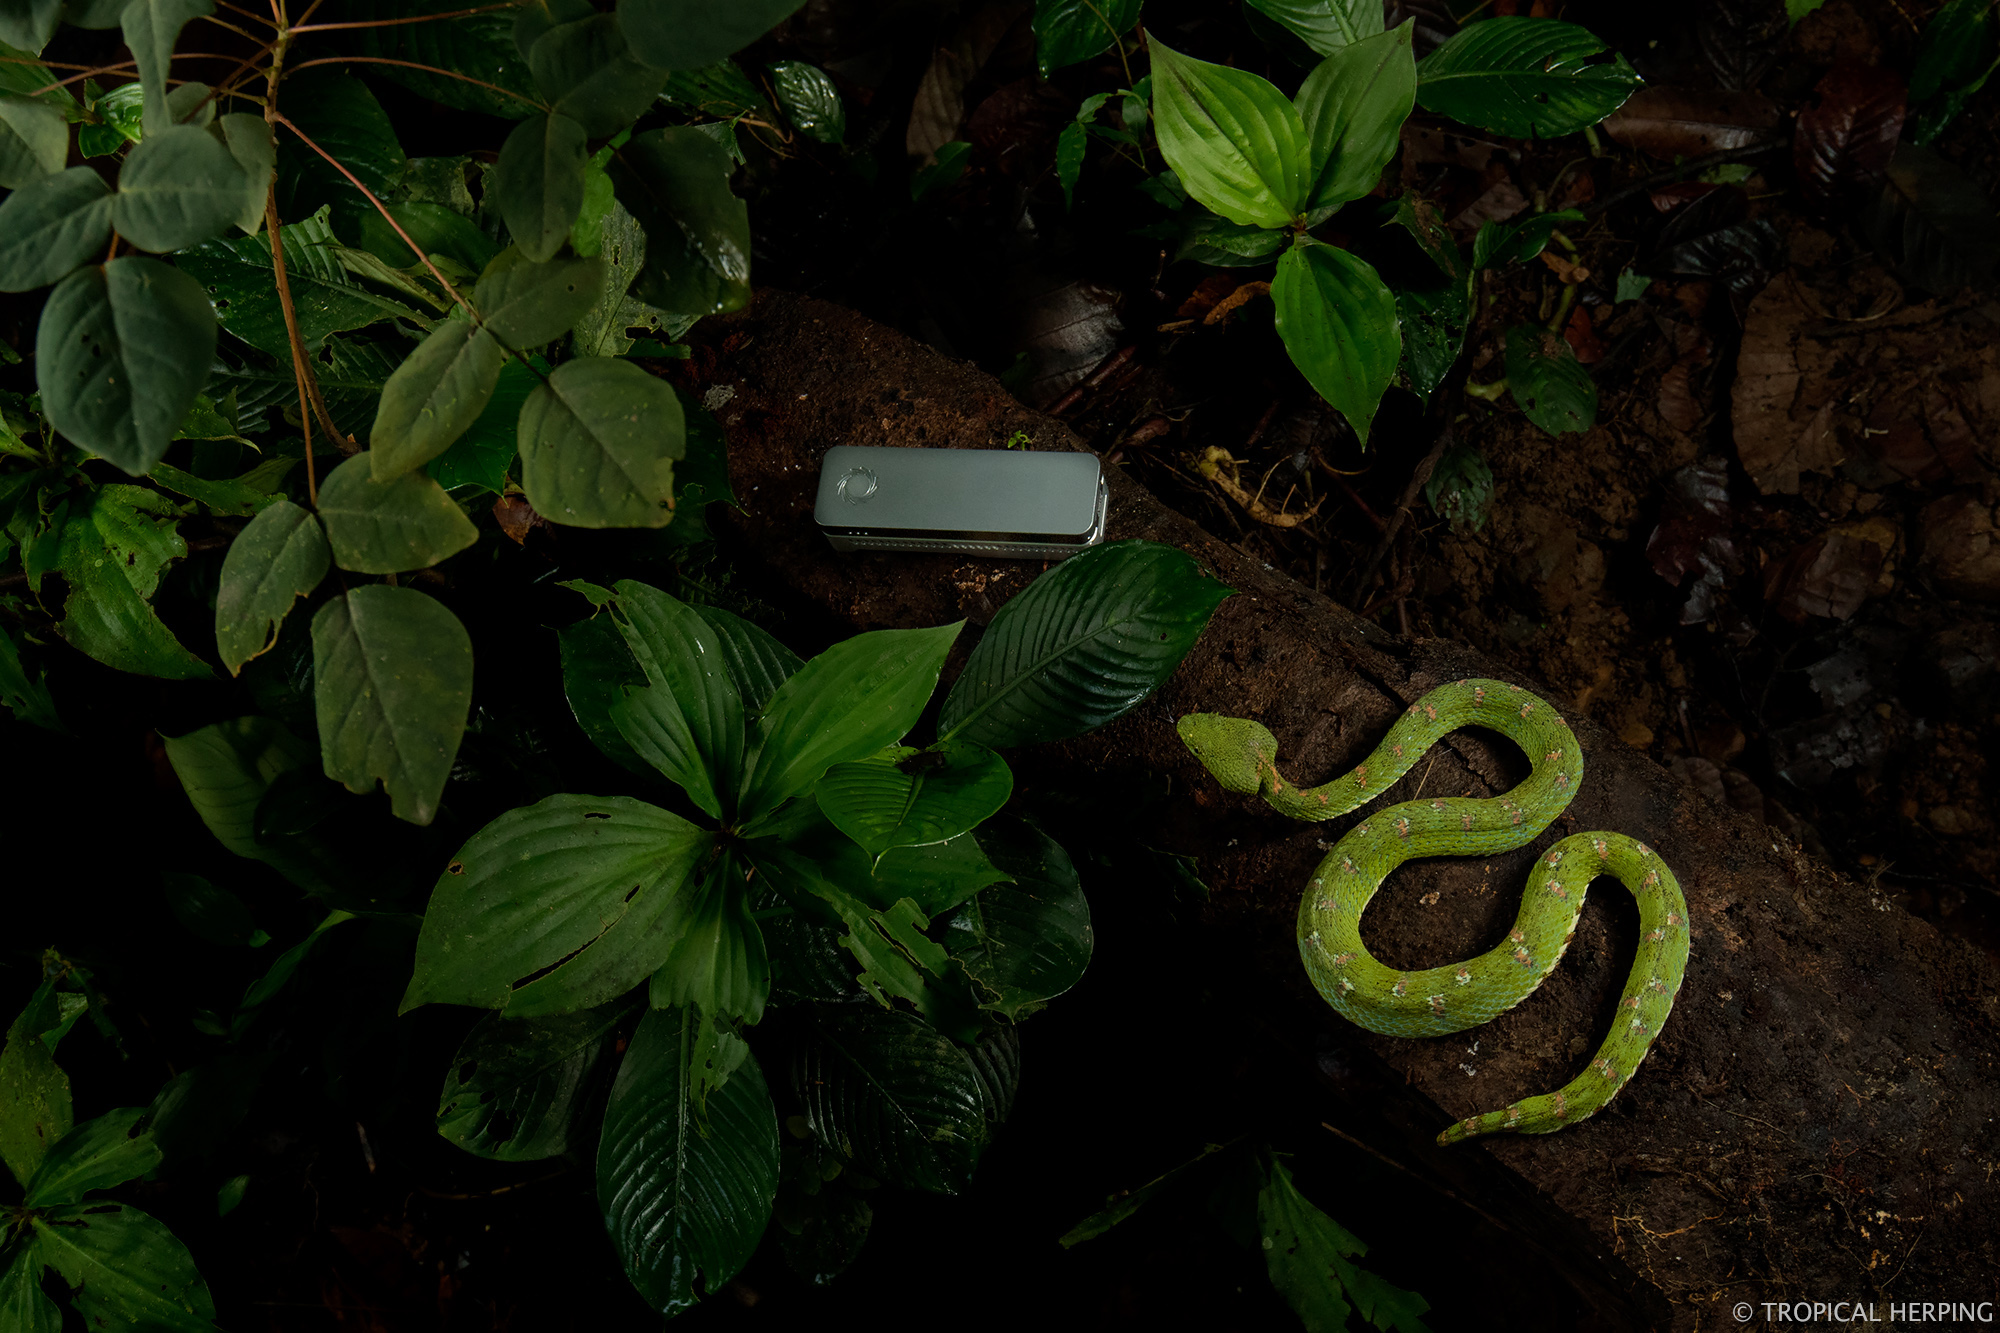 A beautiful shot of our viper next to the MinION by Lucas Bustamante